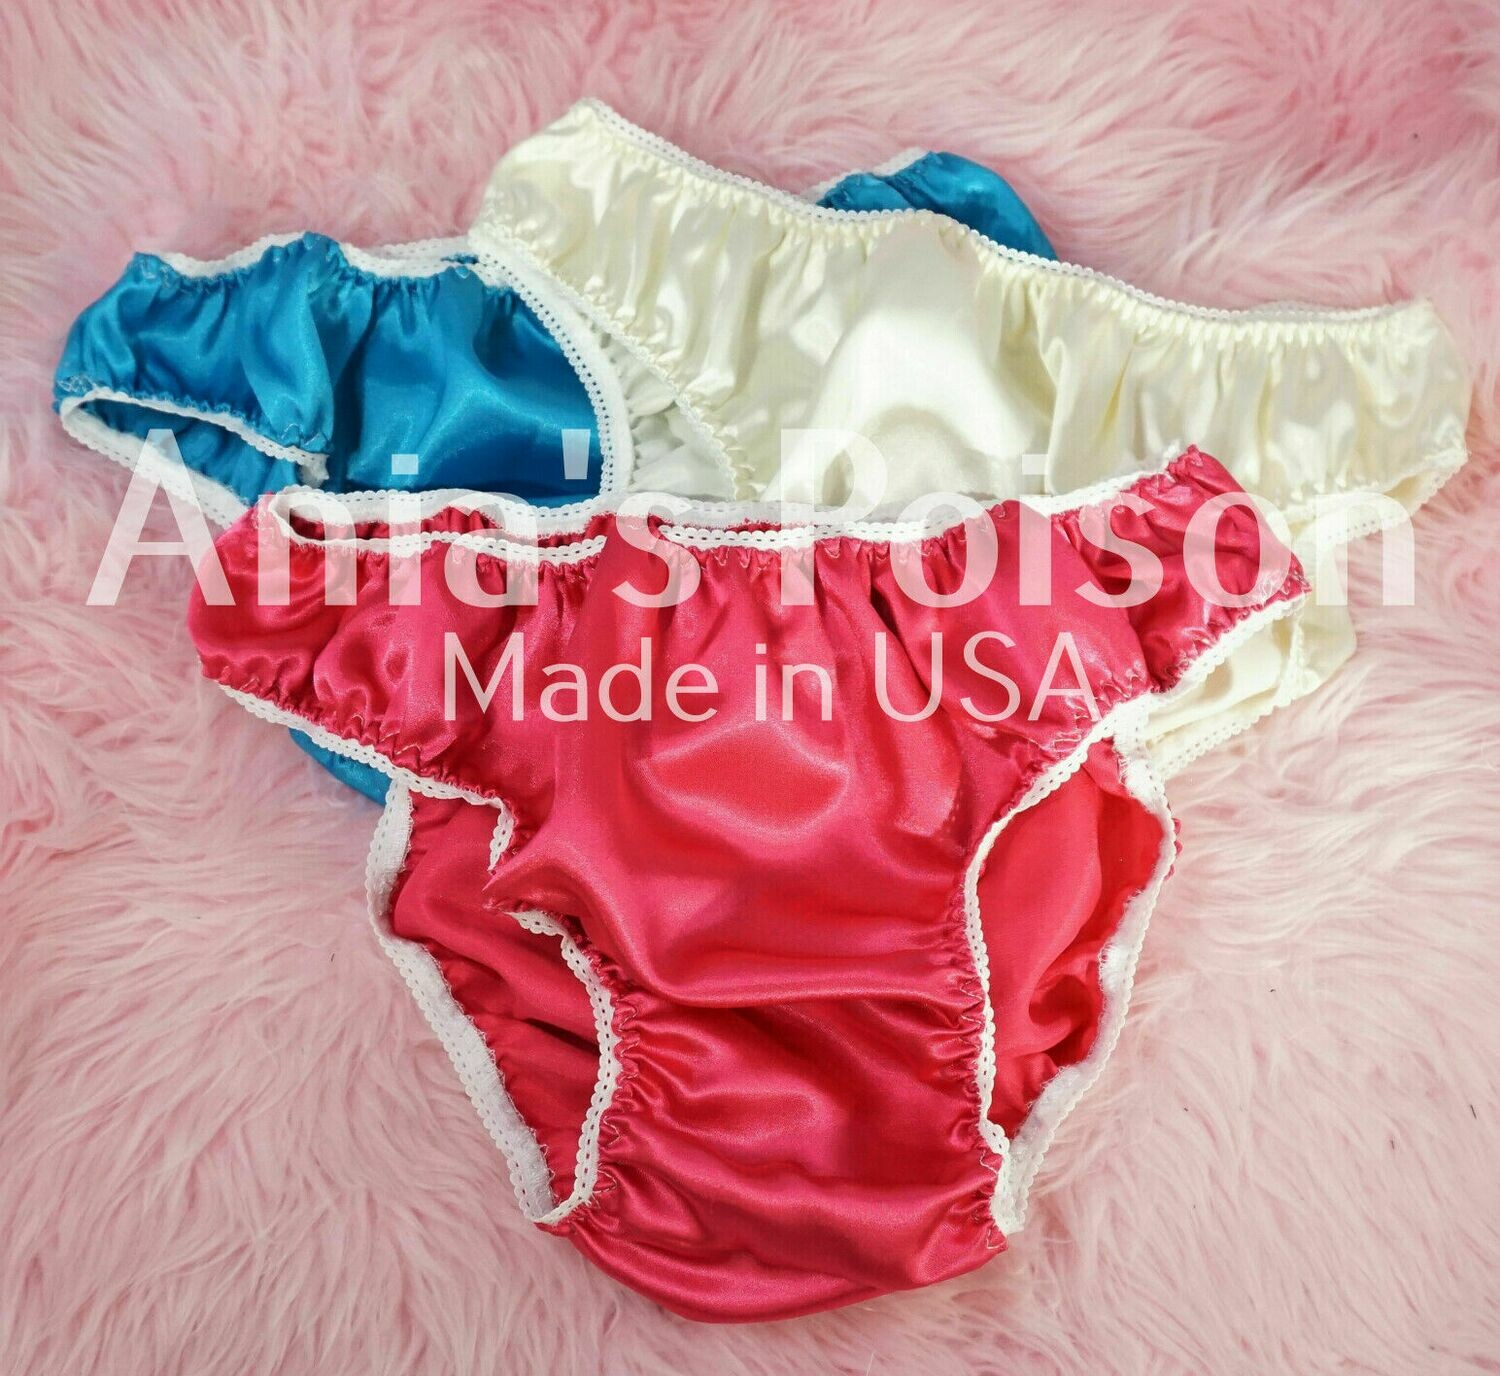 Anias Poison Full Solid color bikini cut Soft satin lined SISSY panties for men MANTIES sz S - XXL